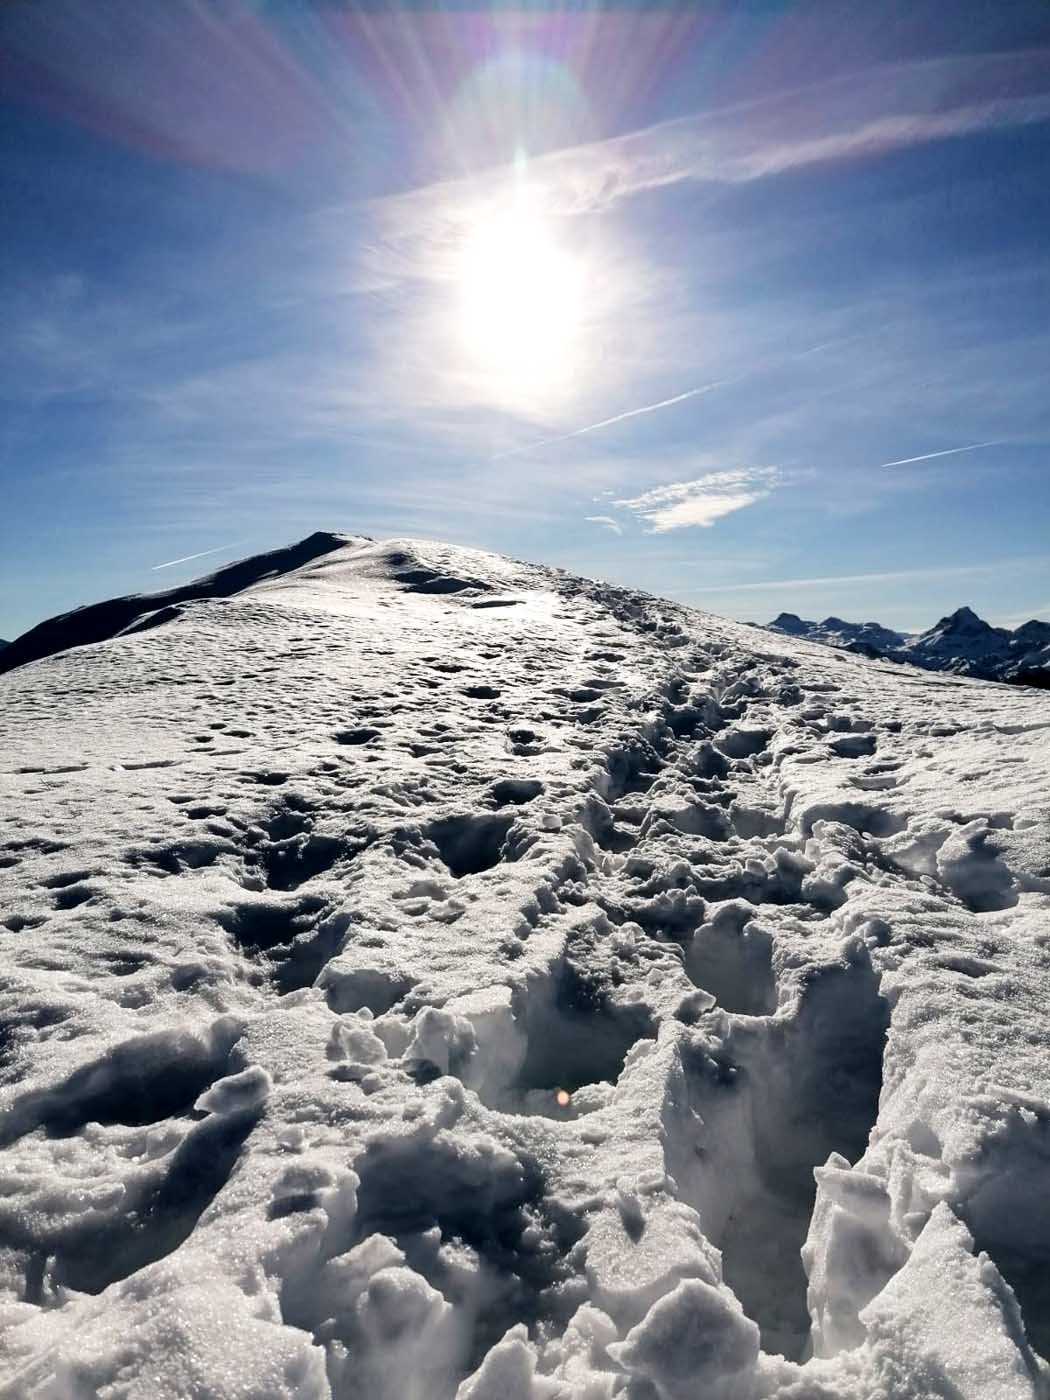 Summit happiness in winter, a dream for all mountain lovers